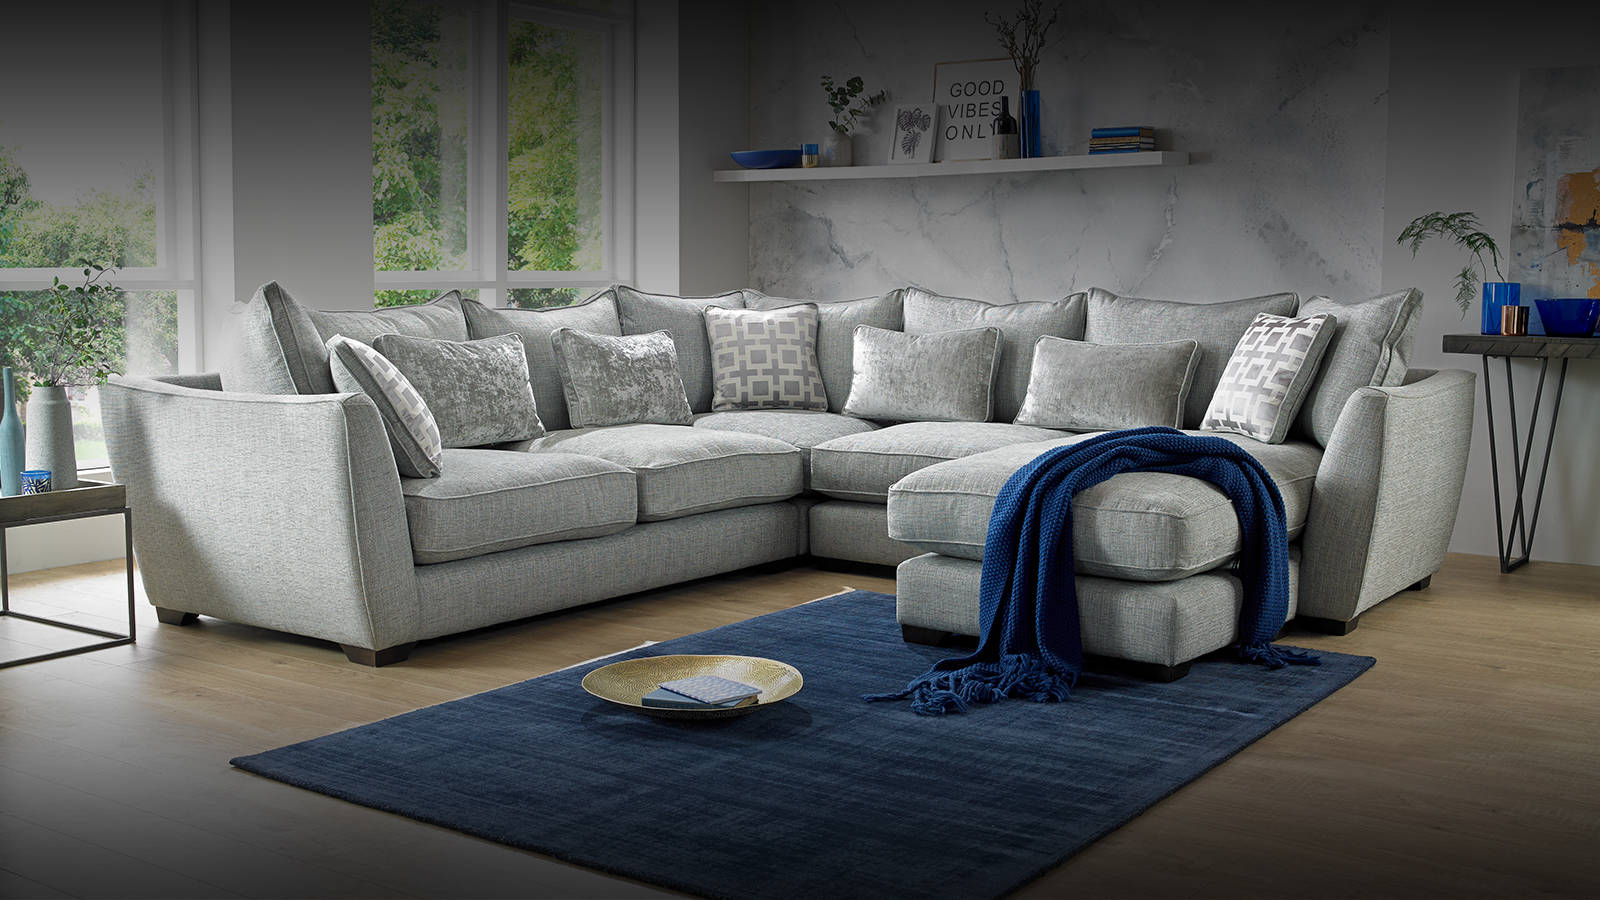 Sofology sofas corner sofas sofa beds chairs always for 1x super comfort recliner chaise